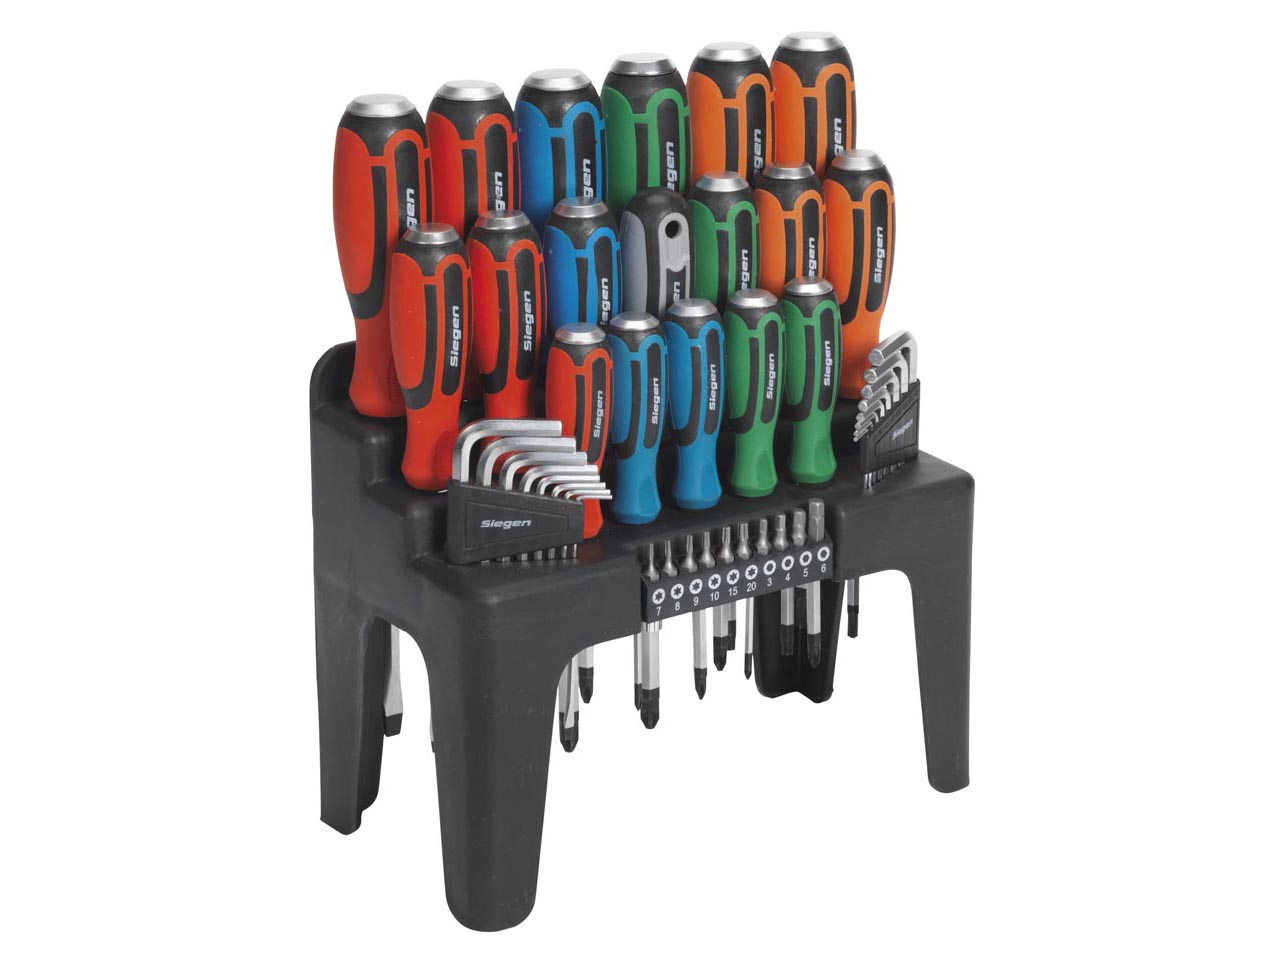 S01106 Hammer-Thru Screwdriver, Hex Key & Bit Set 44pc